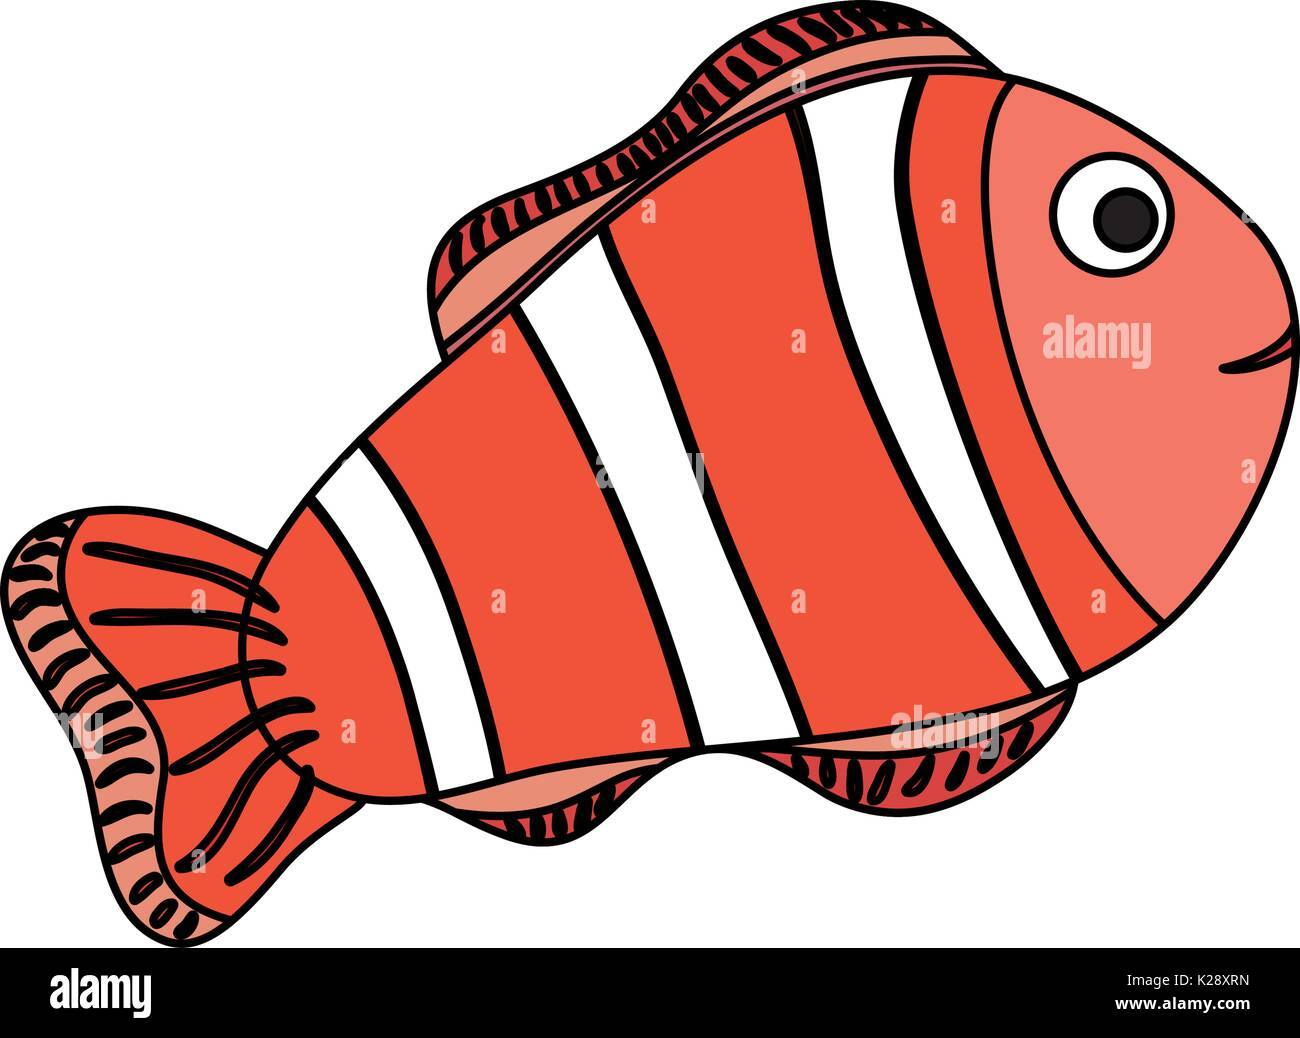 Animal Nature Aquatic Mascot Stock Photos & Animal Nature Aquatic ...